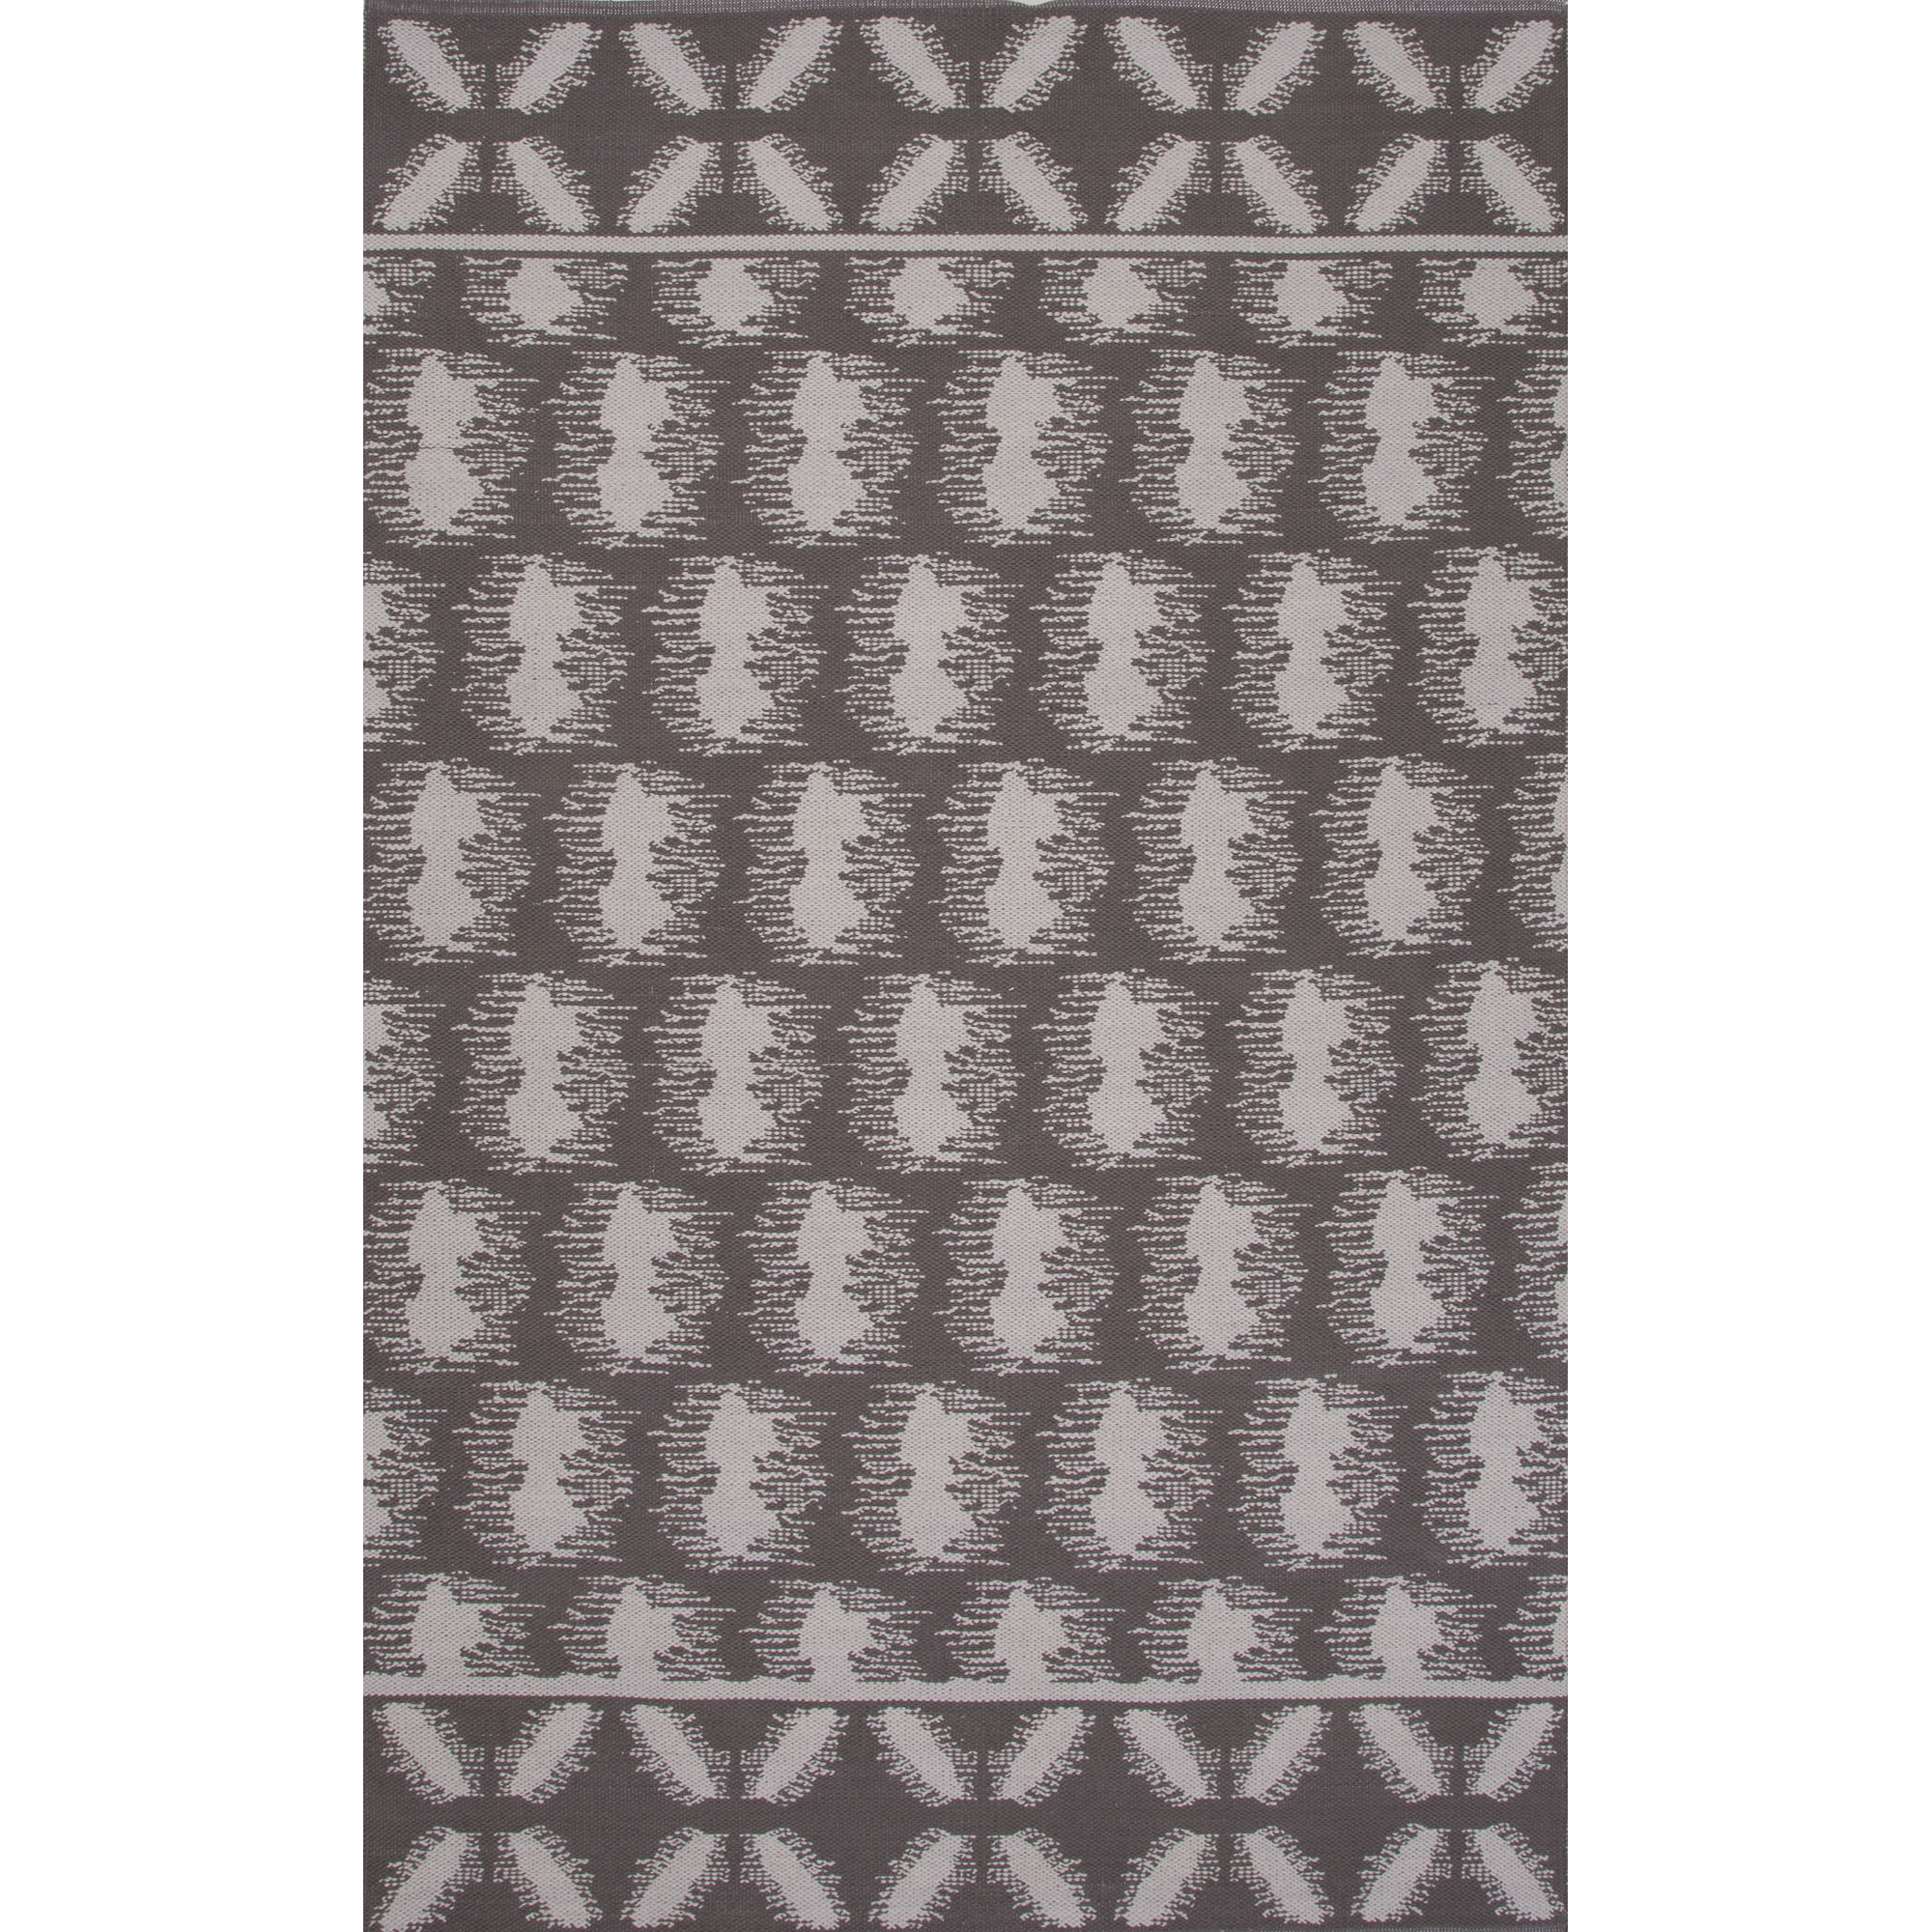 JAIPUR Rugs Traditions Modern Cotton Flat Weave 8 x 11 Rug - Item Number: RUG122229